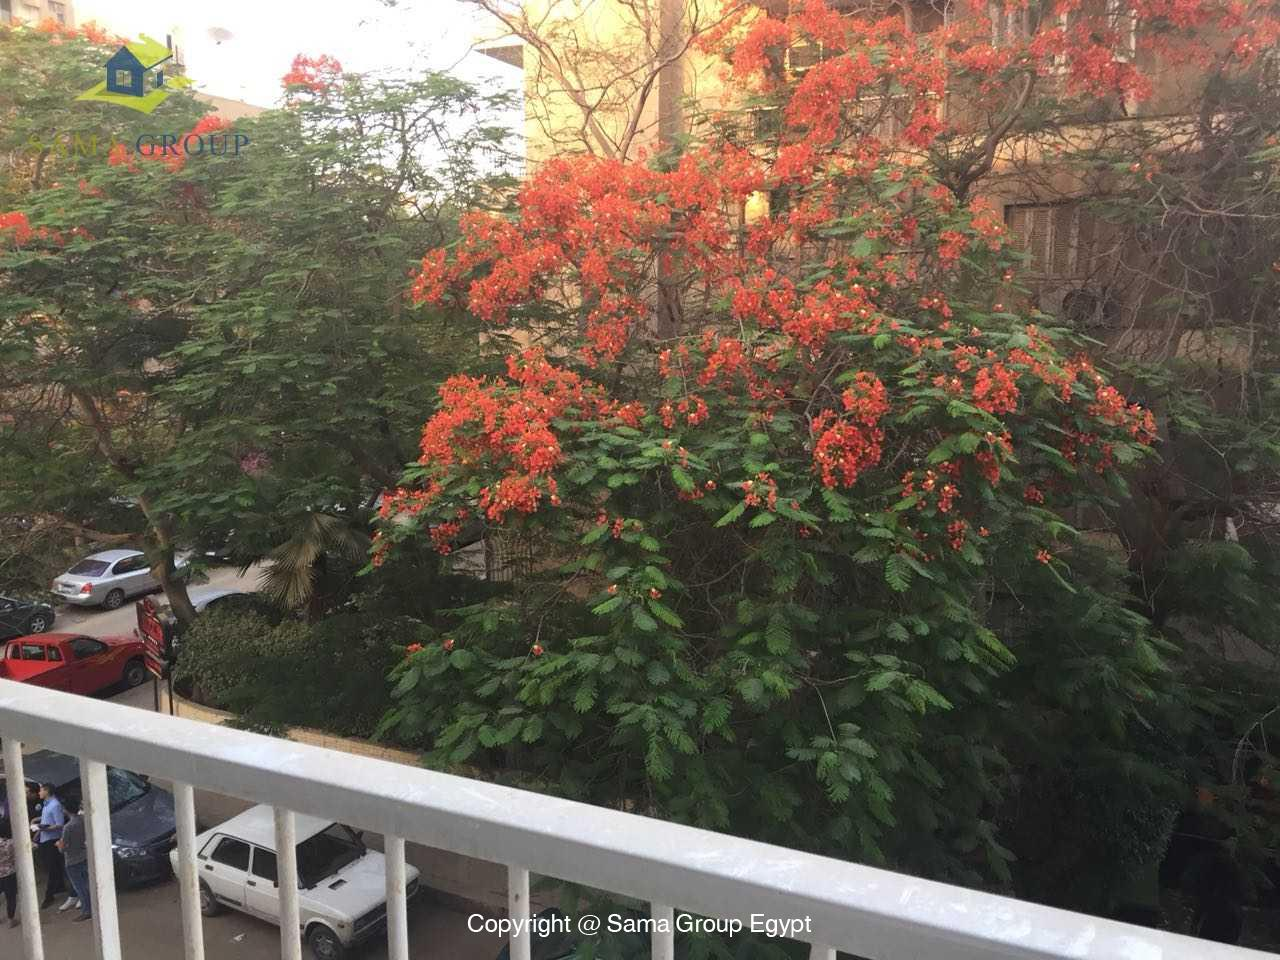 Furnished Apartment For Rent In Maadi,Furnished,Apartment NO #10